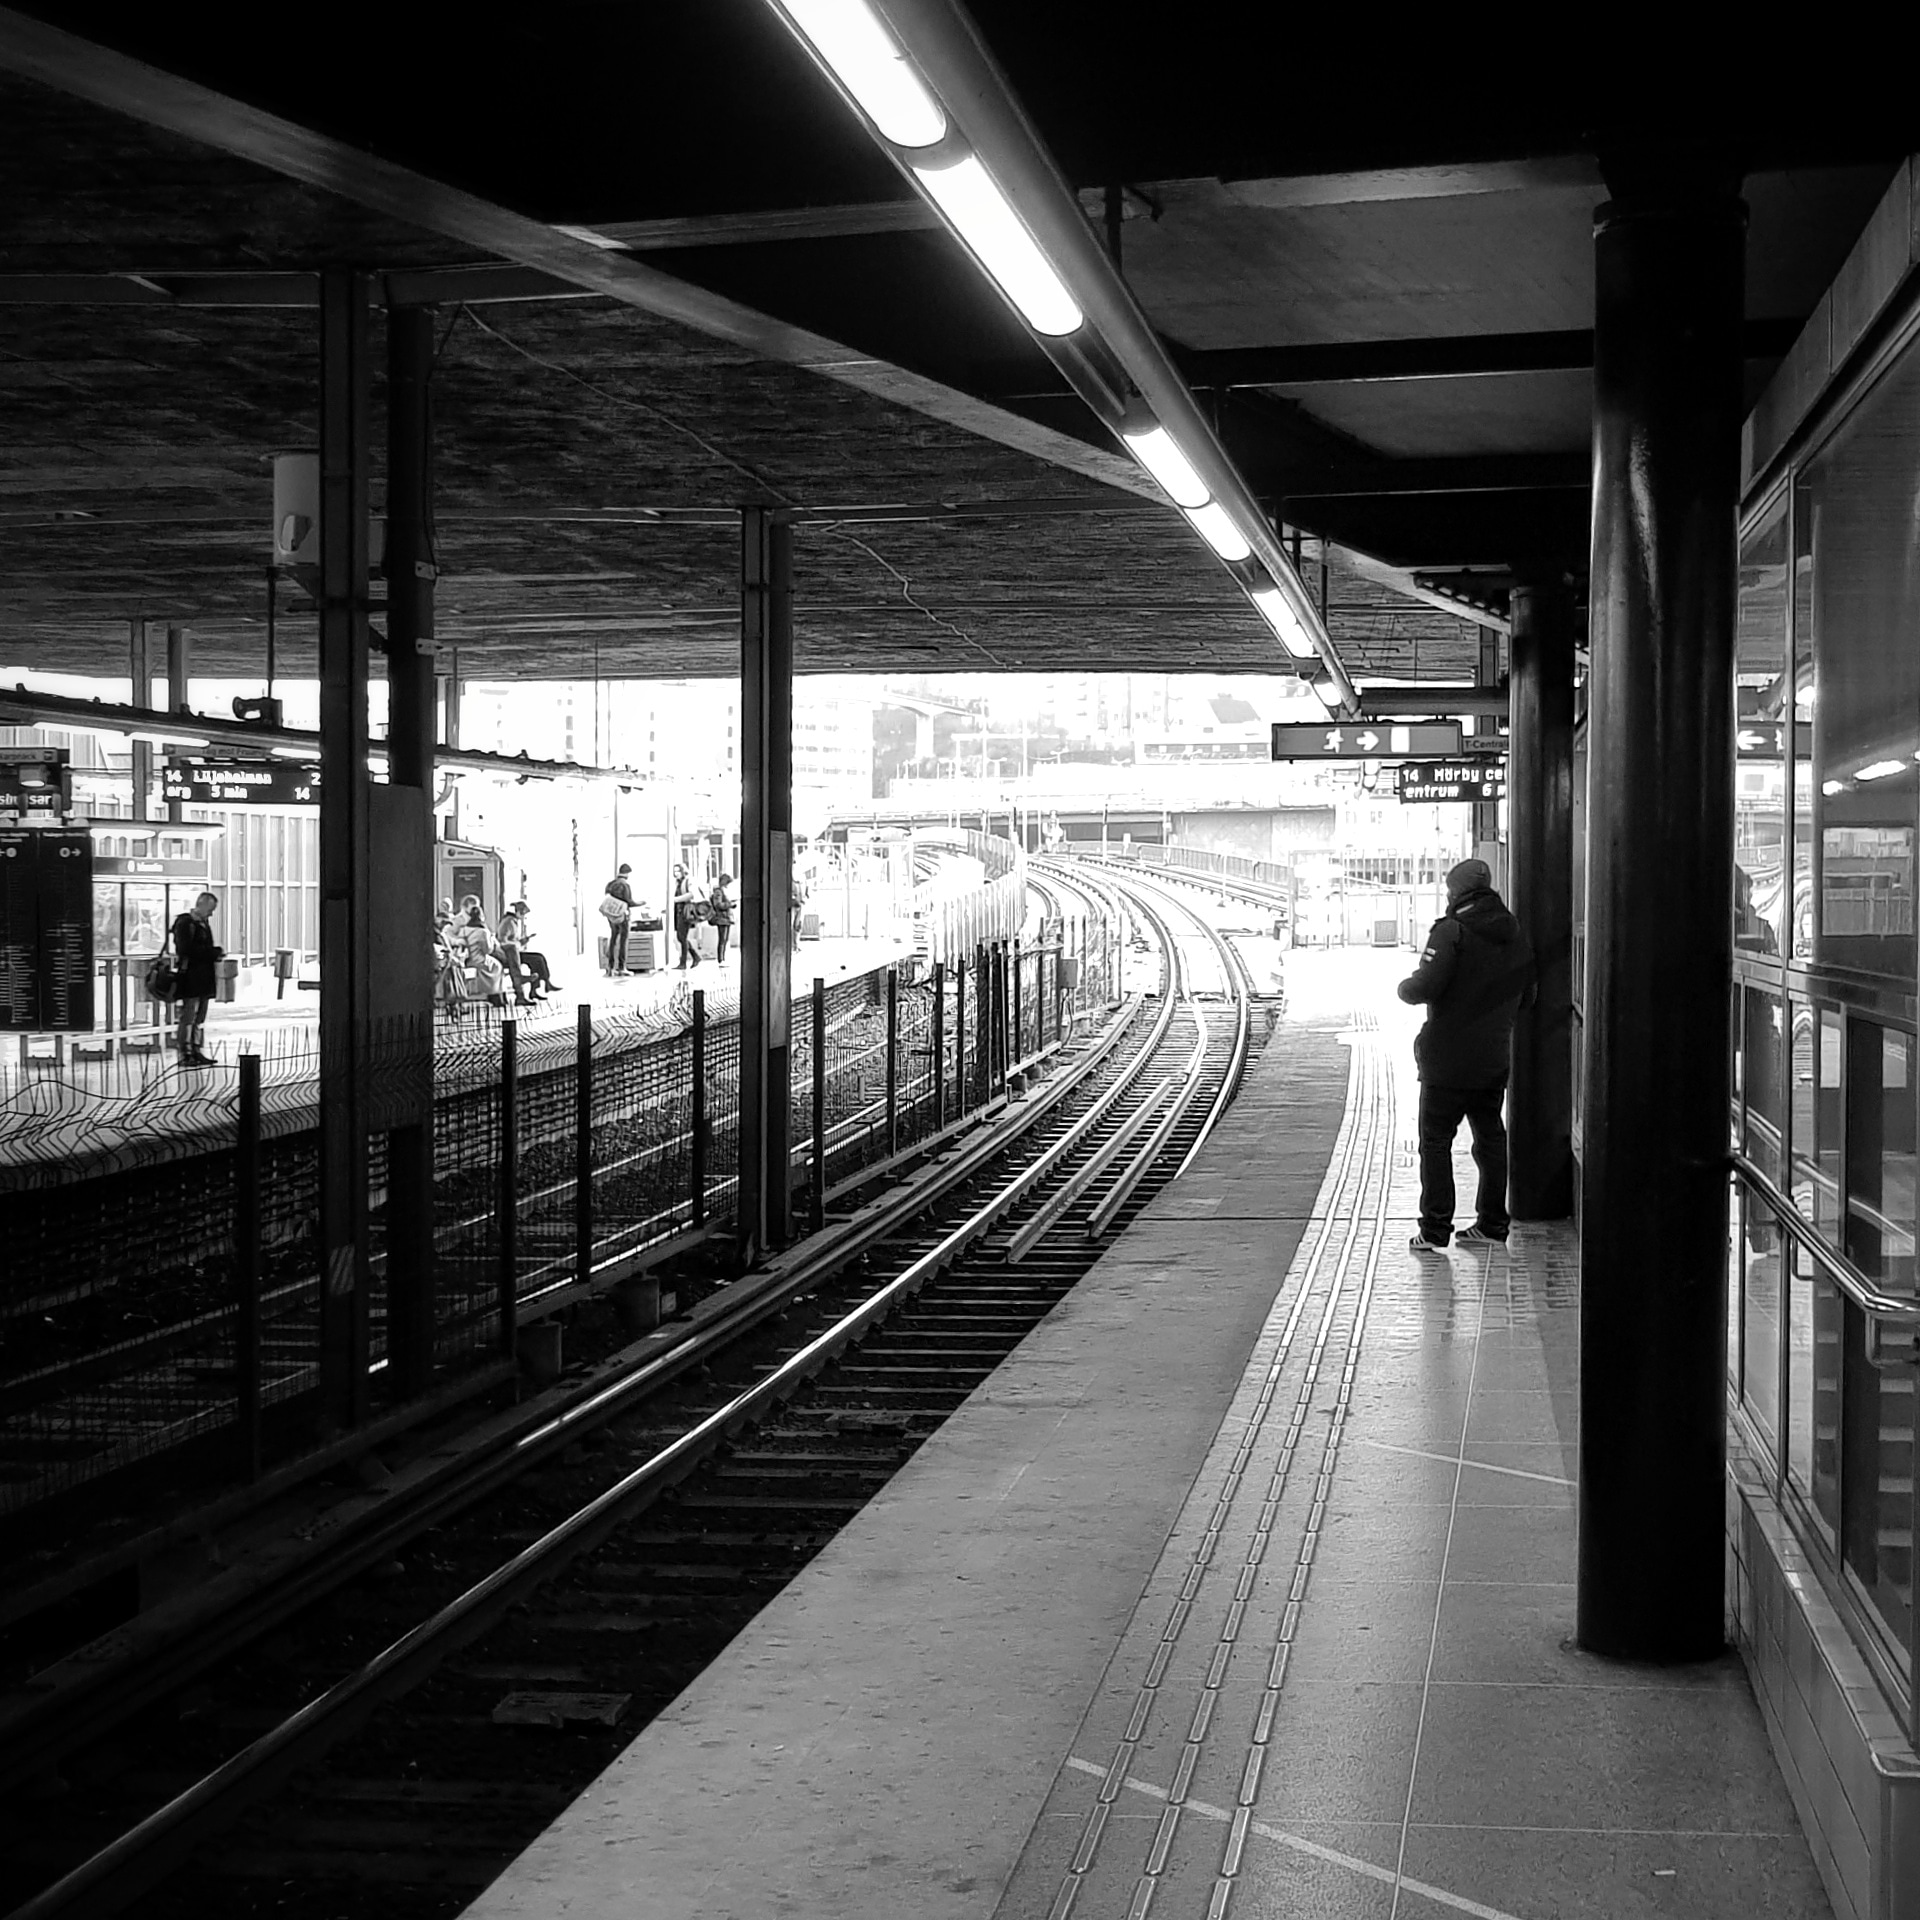 Day 1: January 1 - Station